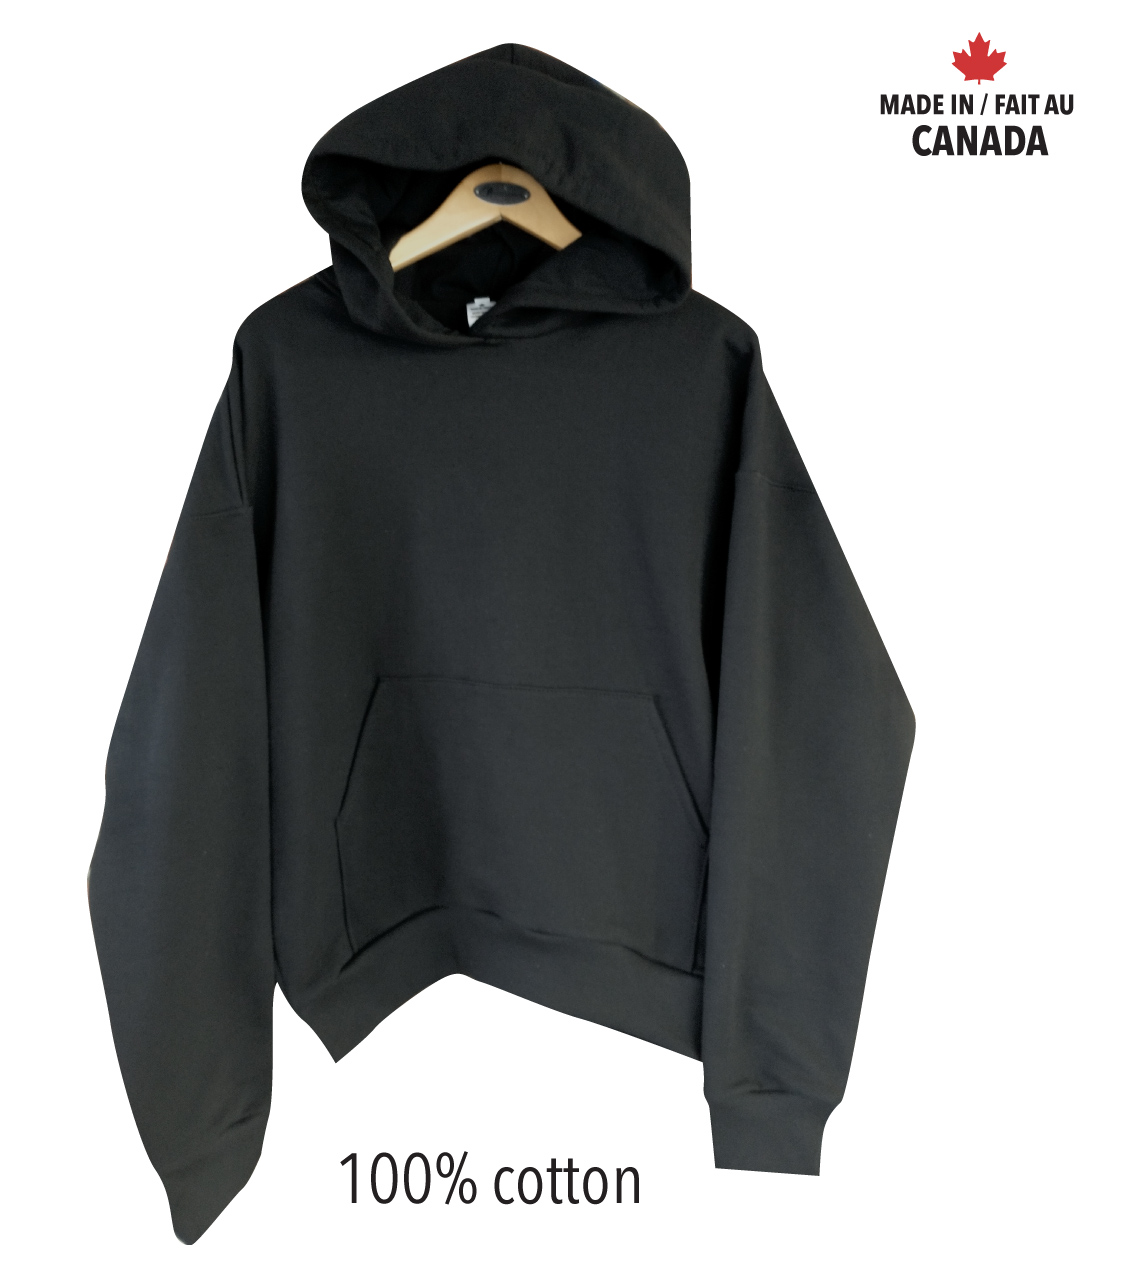 100% cotton Pullover Hooded Sweatshirt